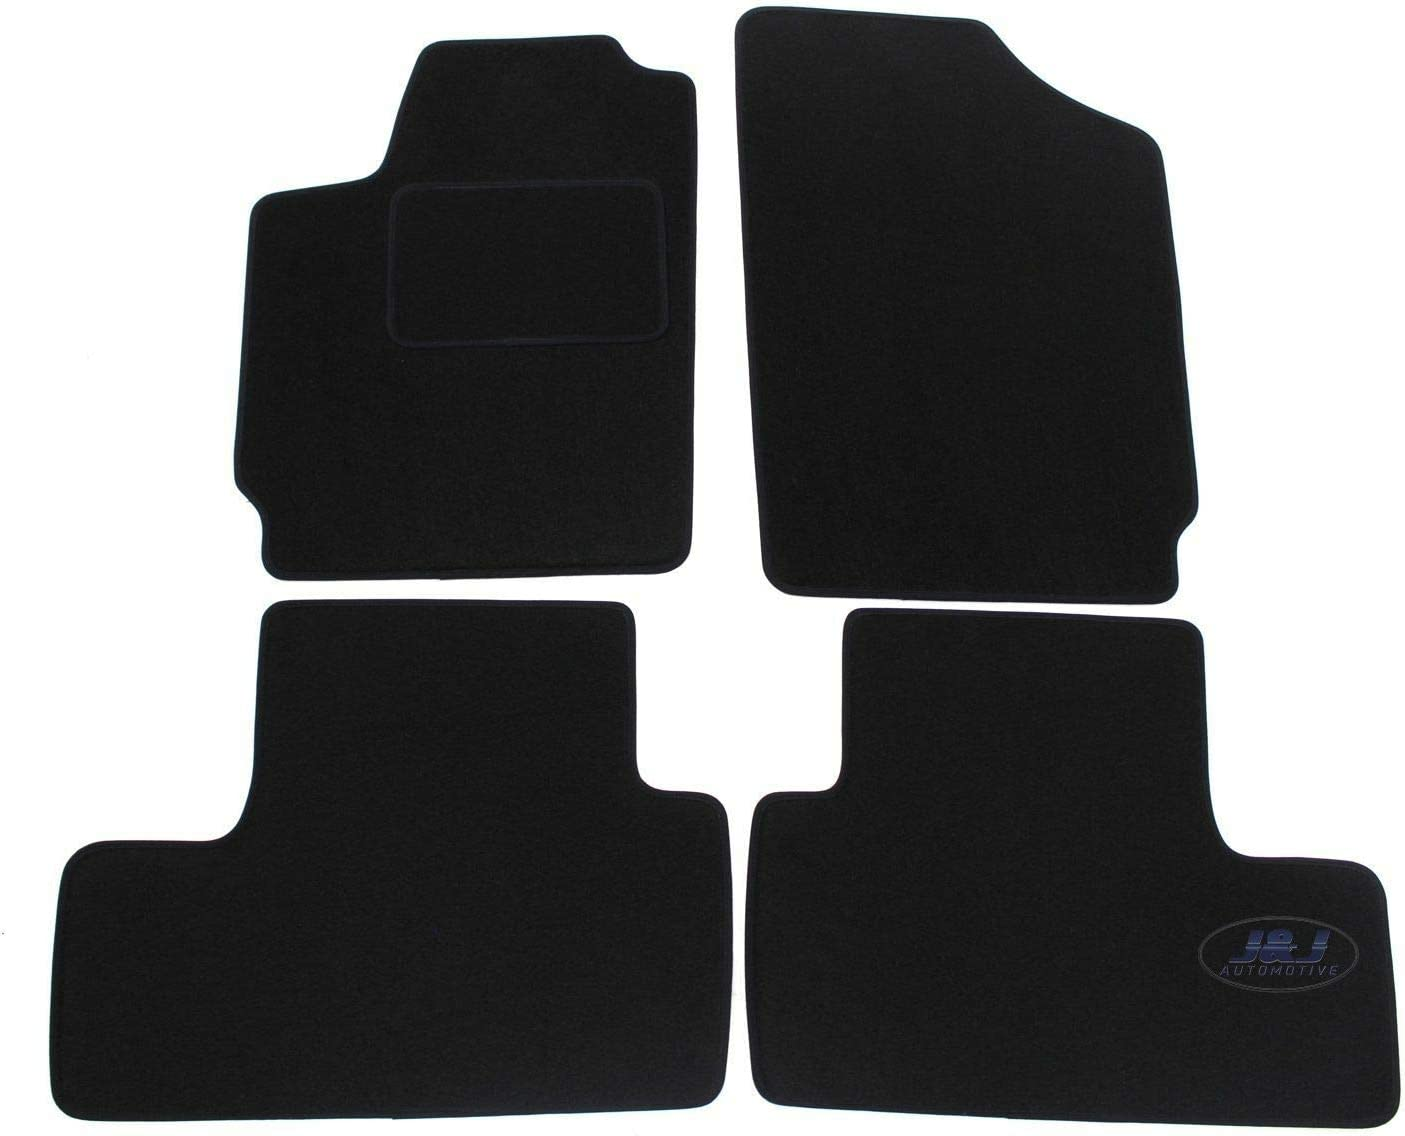 Tapis de Sol Noir Velours Compatible avec Citroen BERLINGO 2003-2008 4 pcs J/&J AUTOMOTIVE